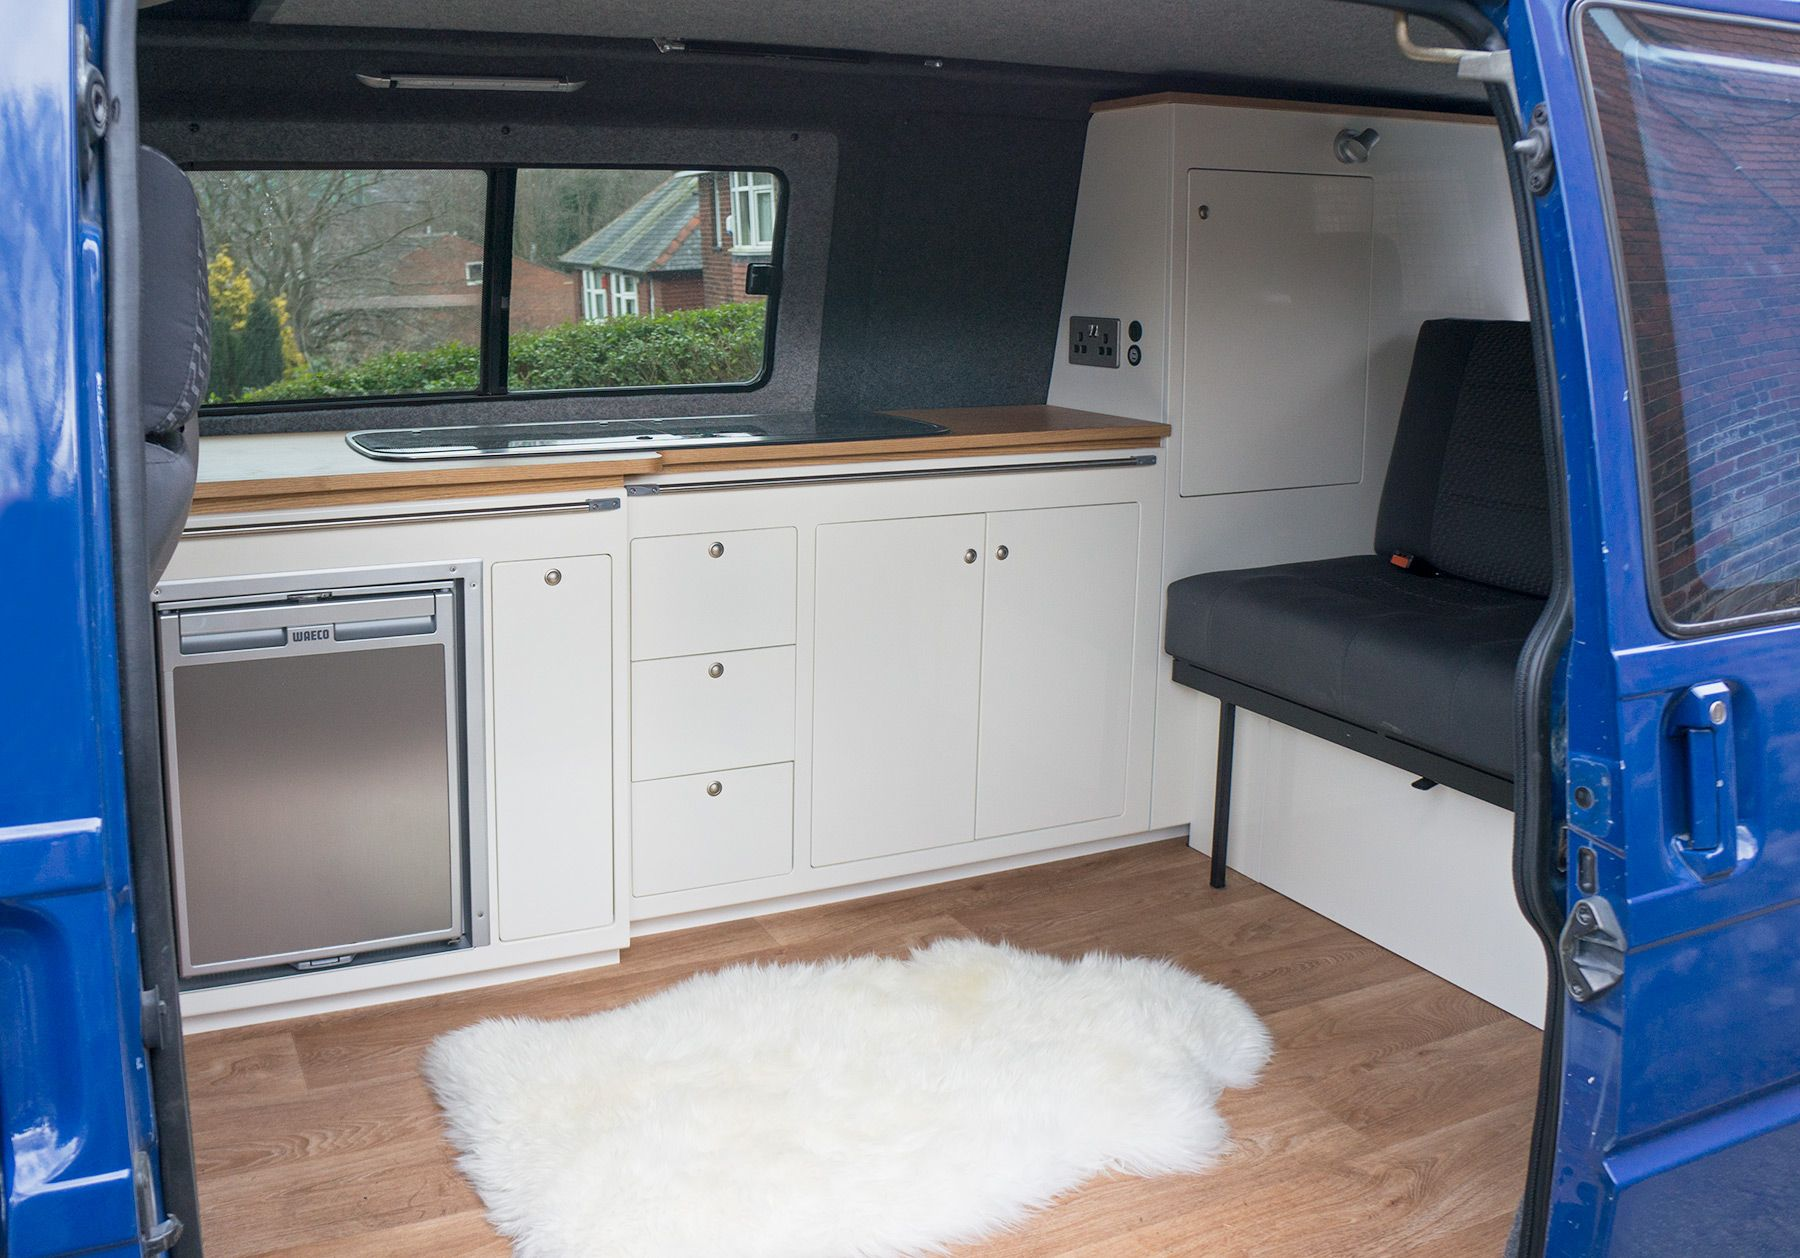 Daisy t4 lwb interior campervan interiors pinterest for Vw t4 interior designs